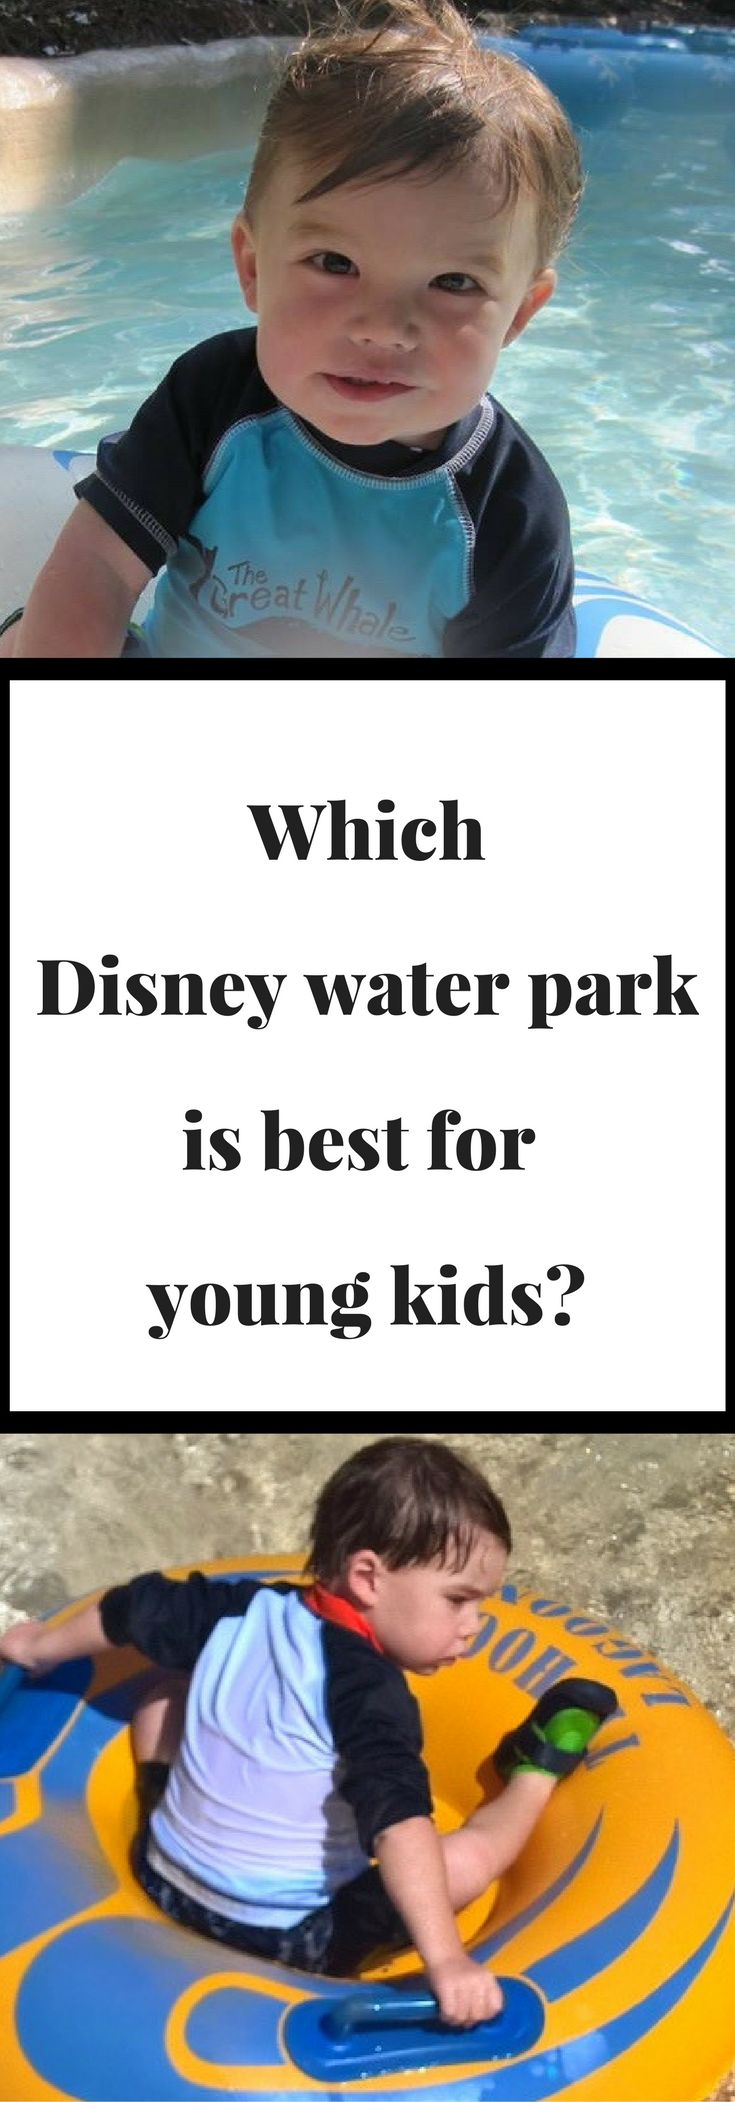 Disney water parks | Blizzard Beach | Typhoon Lagoon | Disney water parks with young kids | Disney water parks with kids